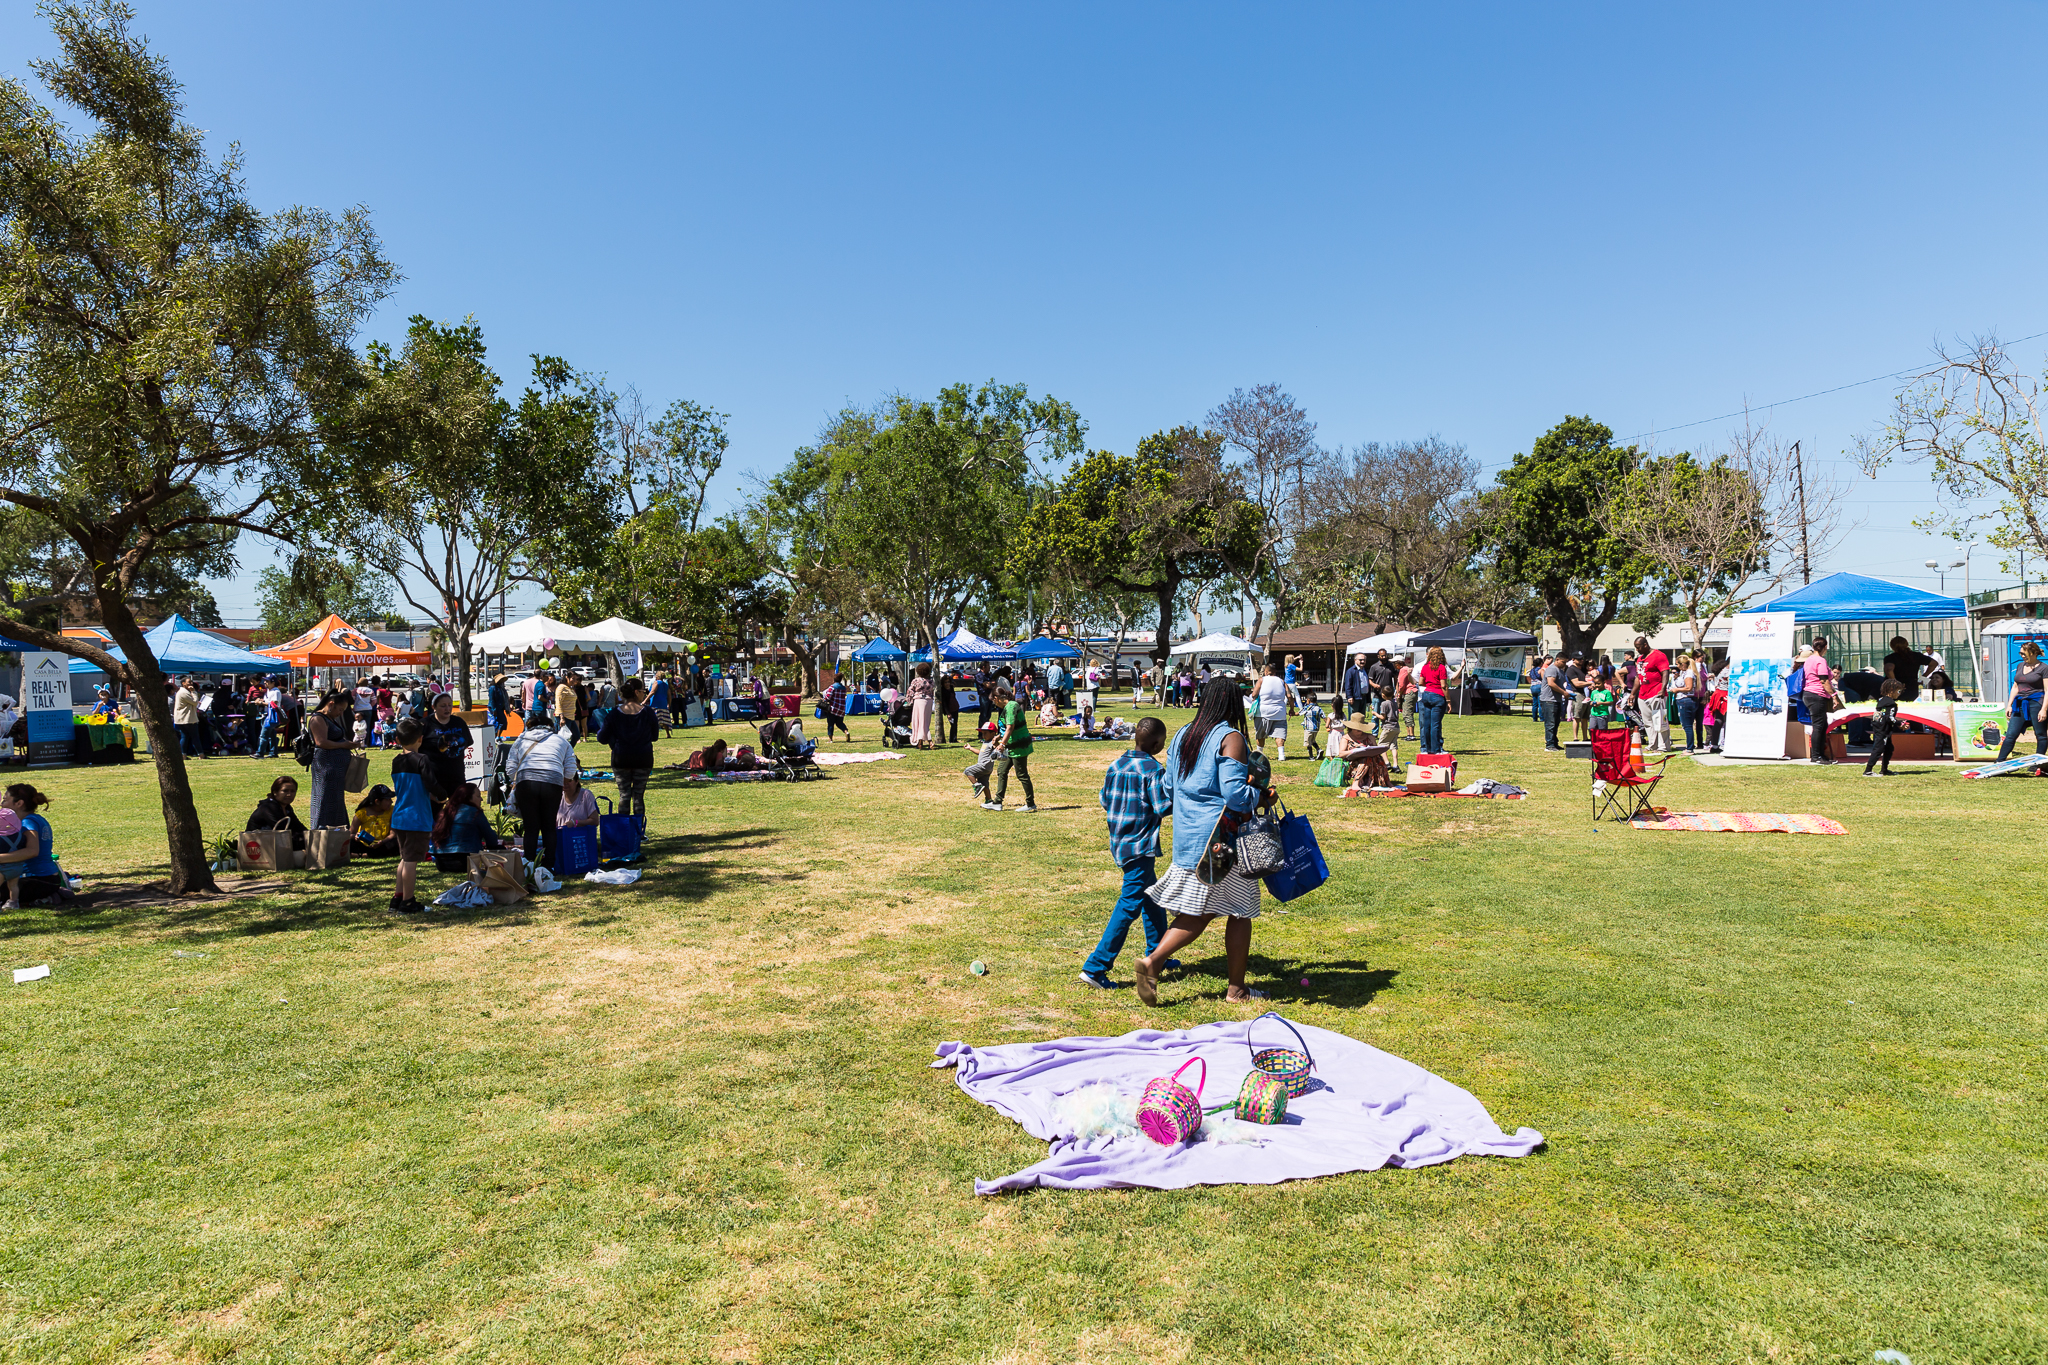 Earth Day Venue in the Park